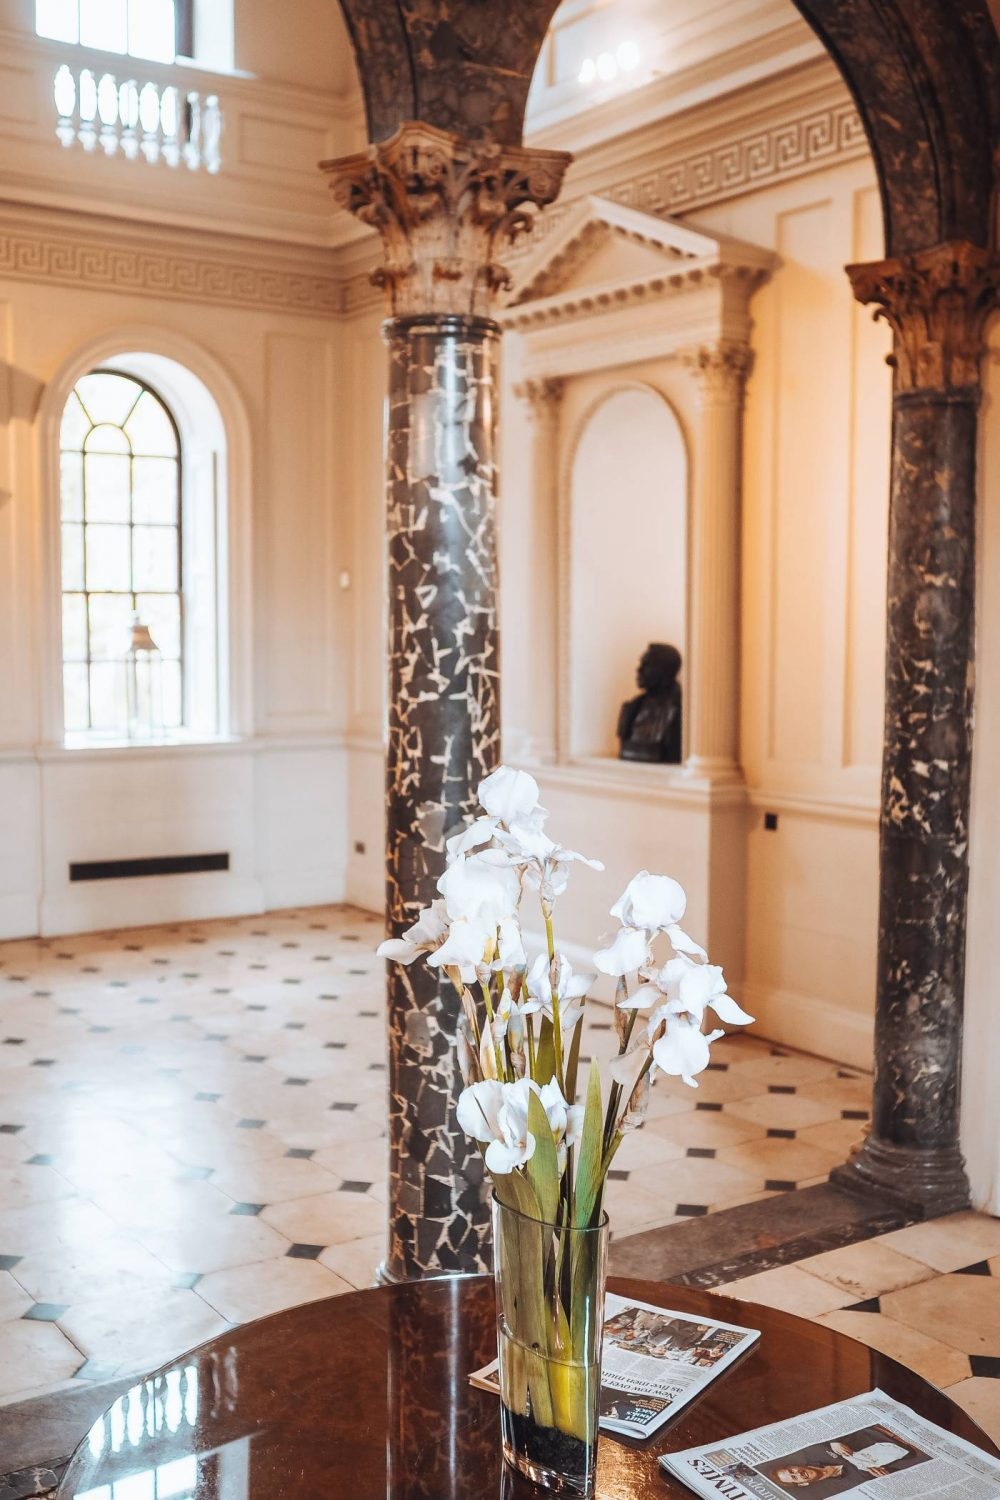 The marble entrance hall at Chicheley Hall